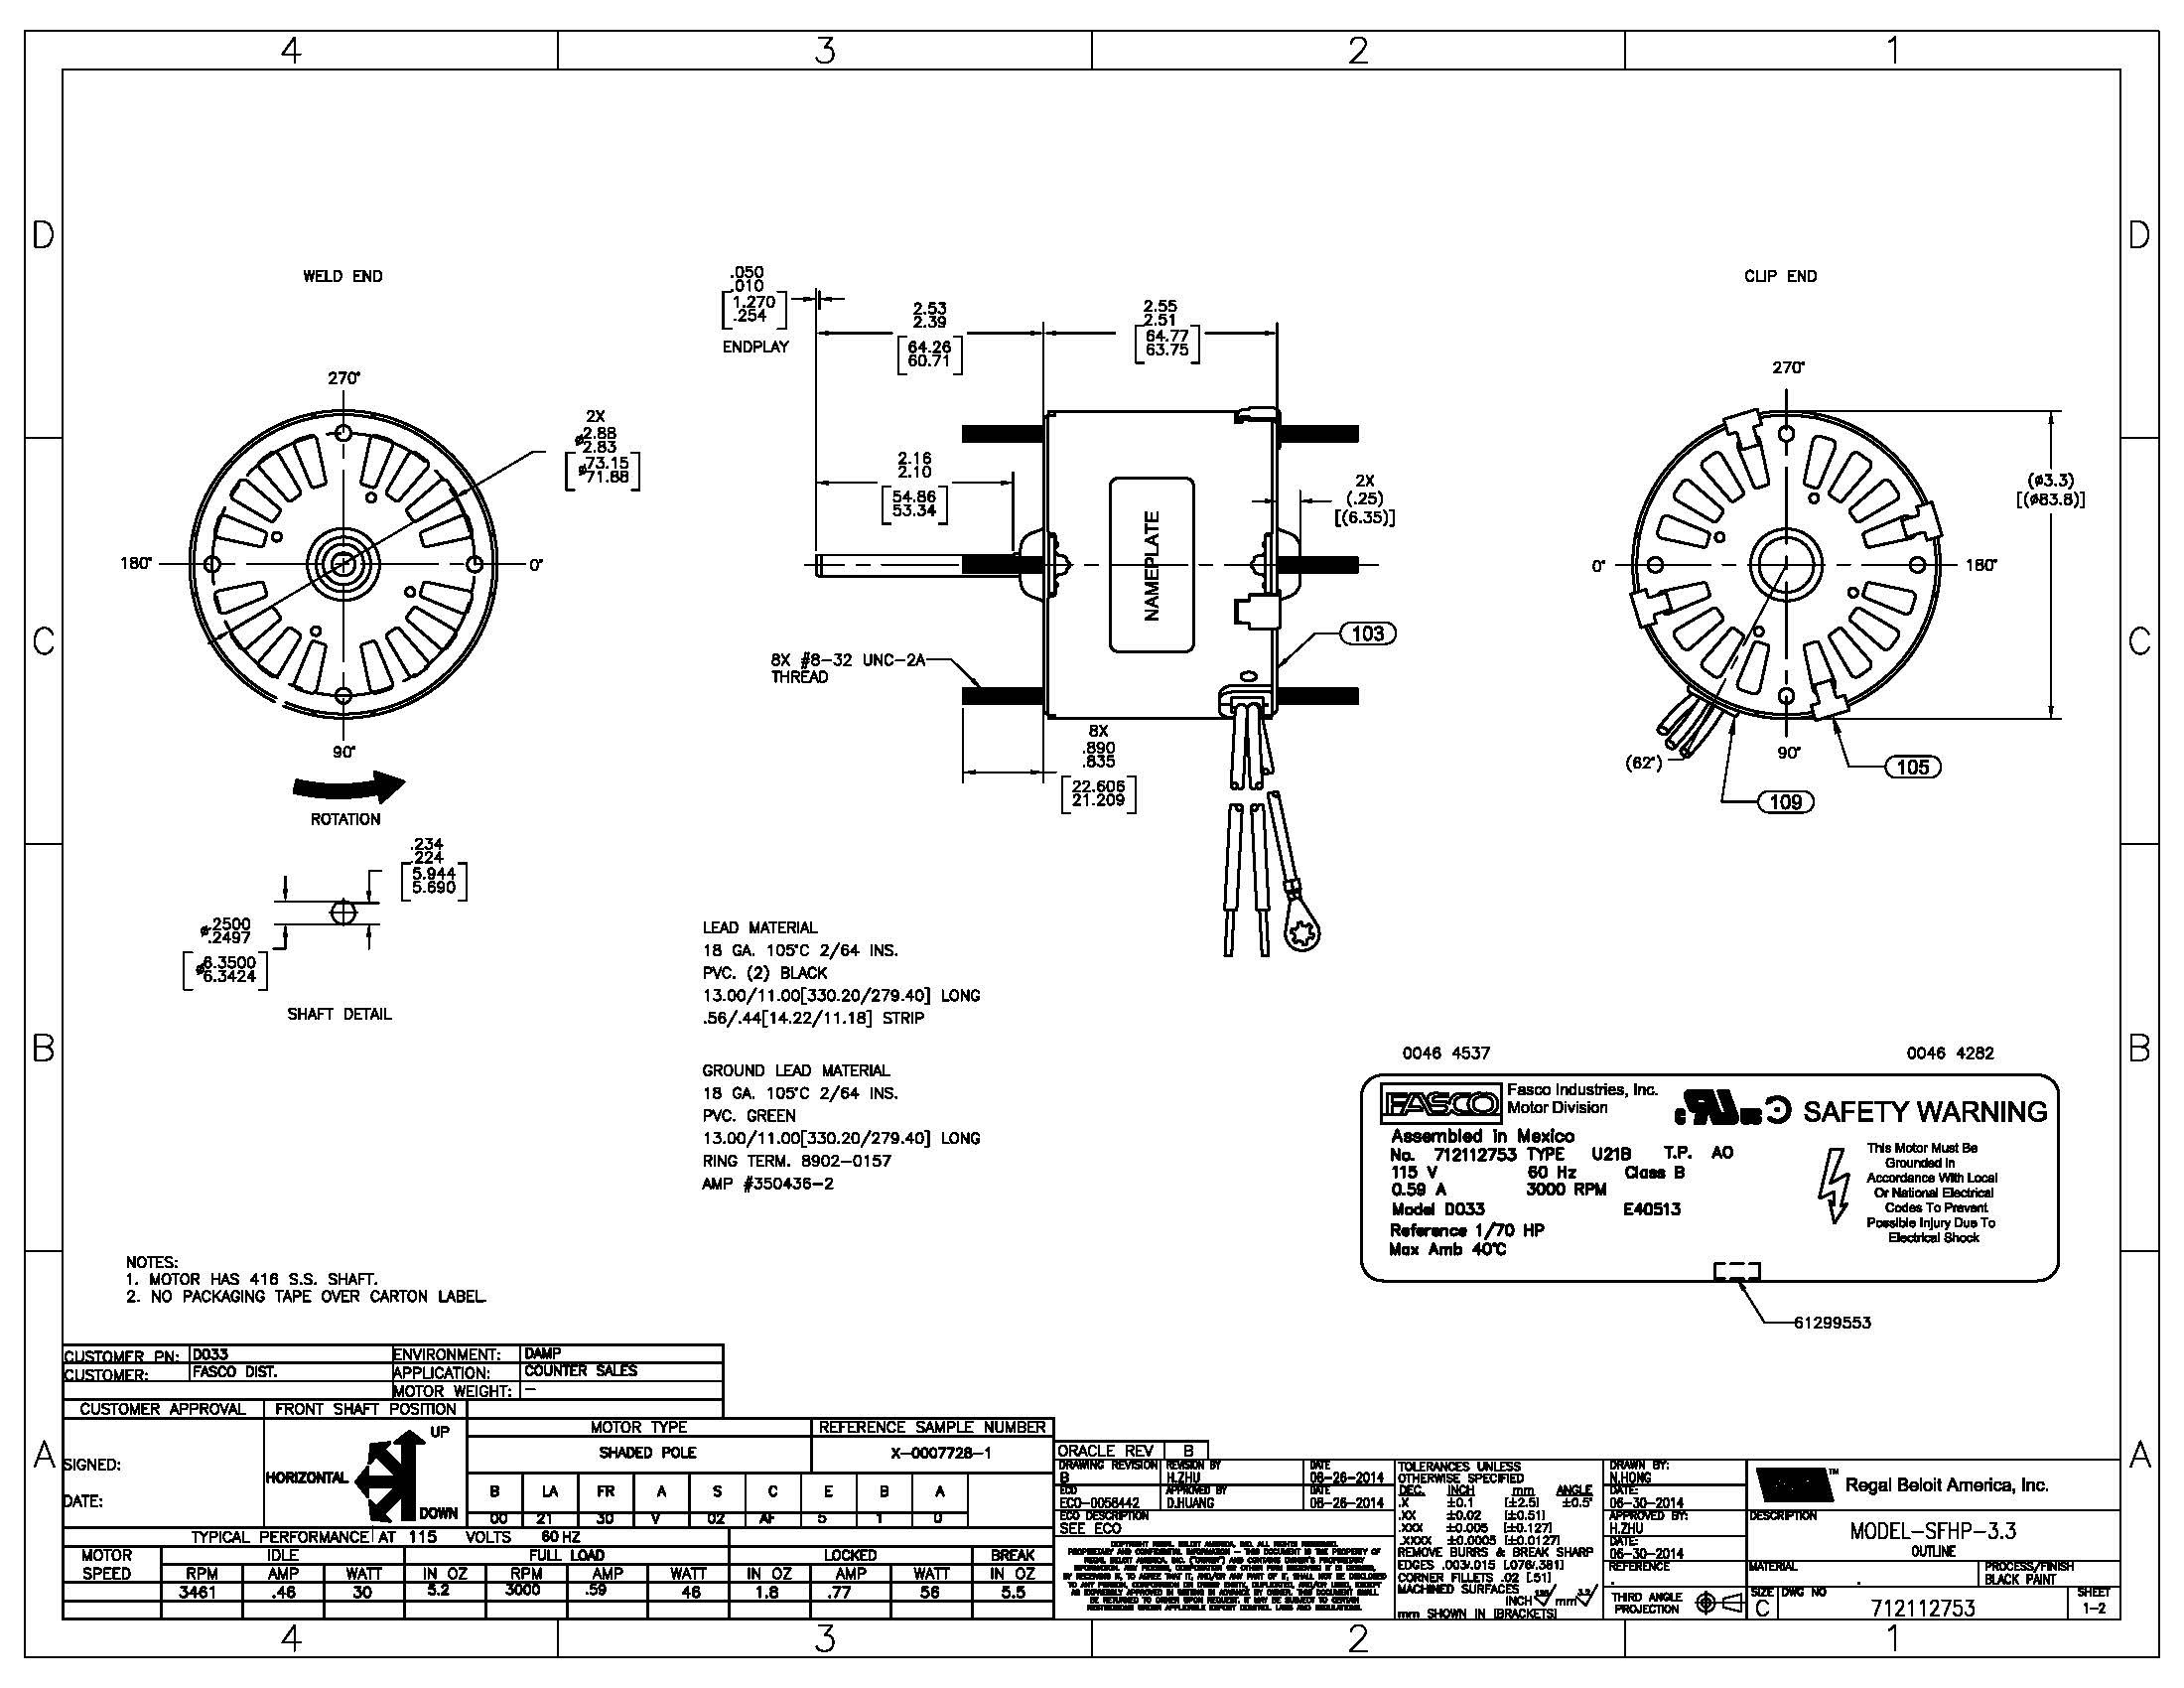 Ao Smith Boat Lift Motor Wiring Diagram | Free Wiring Diagram on electric radiator fan wiring diagram 1995 mercury villager, electric fan wiring kit, bedini motor circuit diagrams, electric fan motor repair, electric motor wiring schematics, electric motor capacitor wiring diagram, electric bike motor controller circuit, electric motor starter wiring diagram, ac blower motor diagrams, electric motor fan blower, electric motor parts, motor control ladder diagrams, electric motor connections, electric motor control circuit diagrams, electric drill motor wiring diagram, motor connections diagrams, electric fan relay wiring, capacitor start motor diagrams, electric fan wire diagram, basic motor controls diagrams,